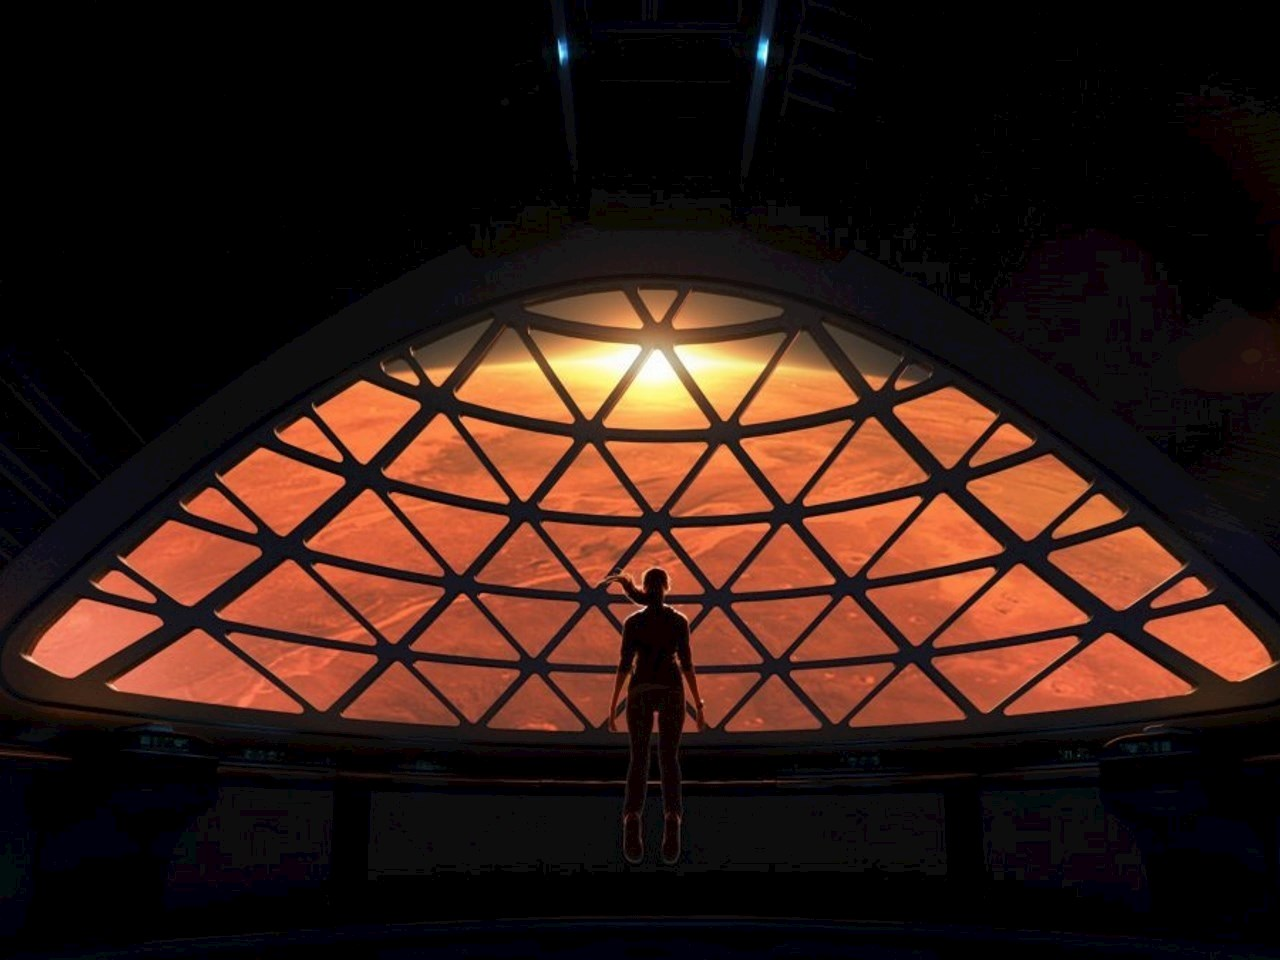 SpaceX's rendering of its Mars spaceship's common area